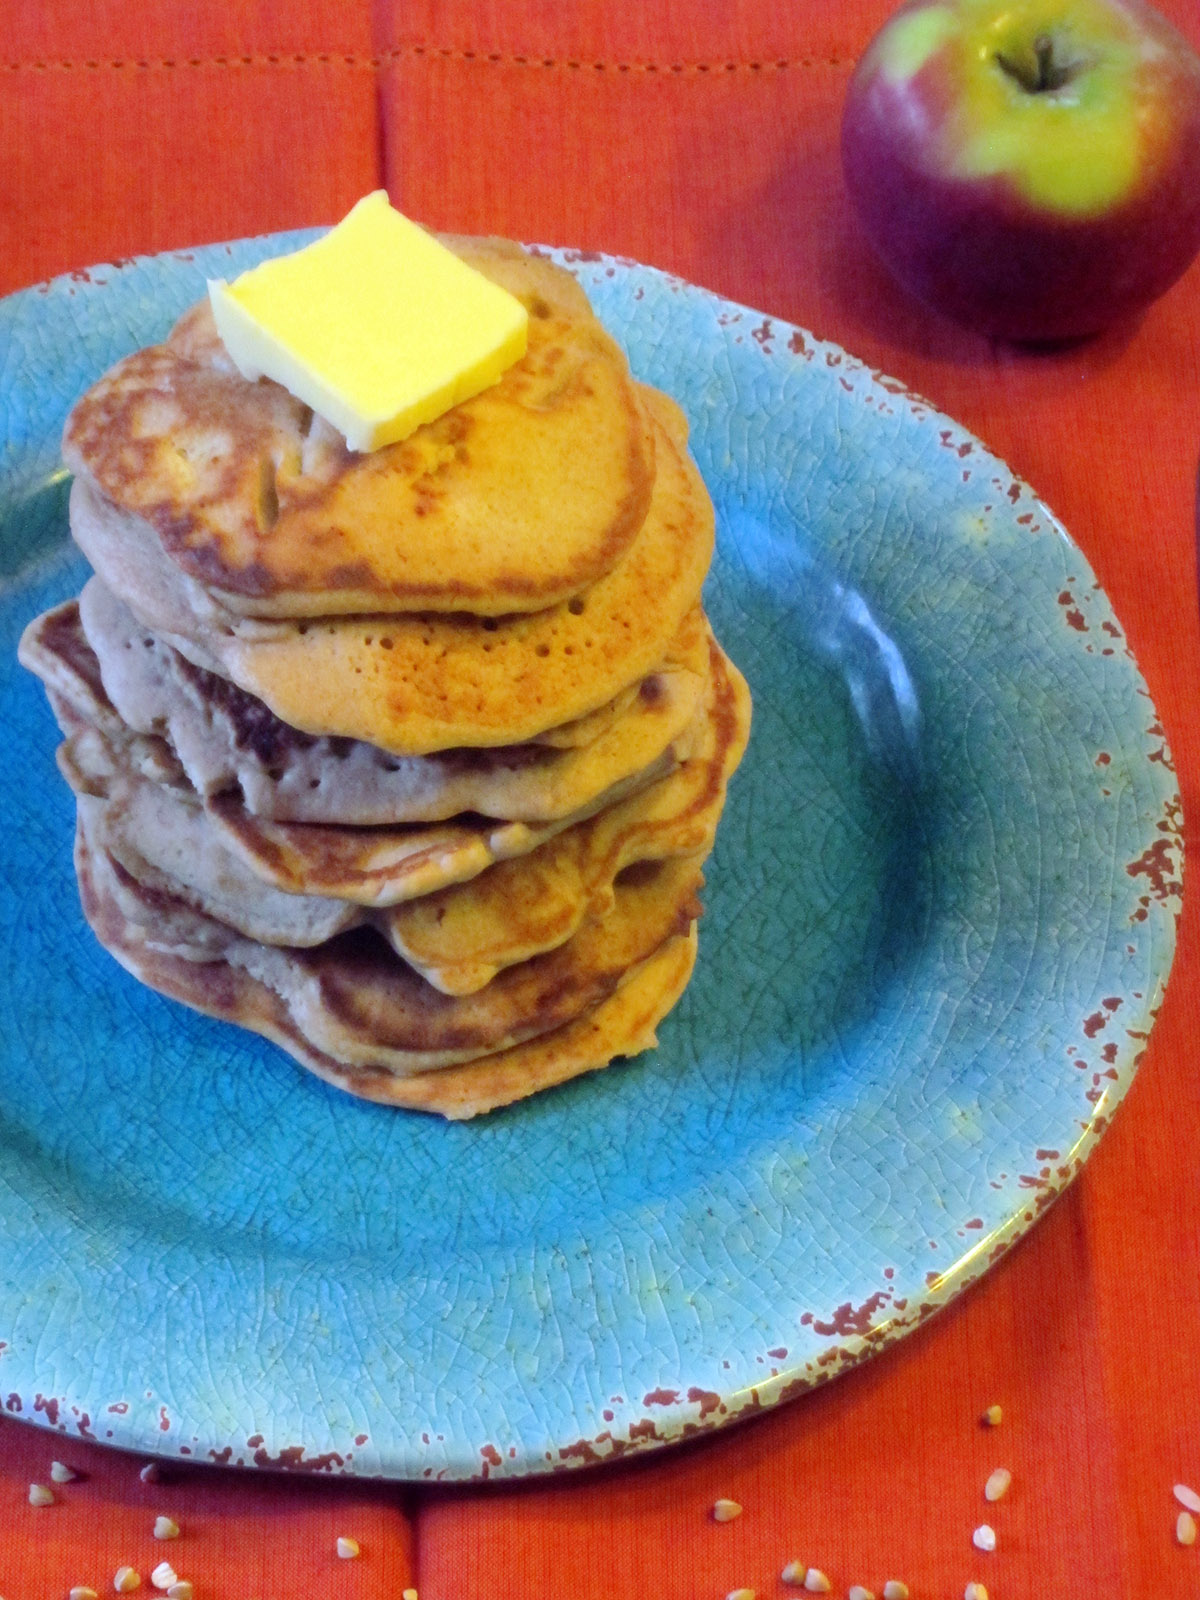 Buckwheat & Yogurt Pancakes with Apples (Gluten Free)